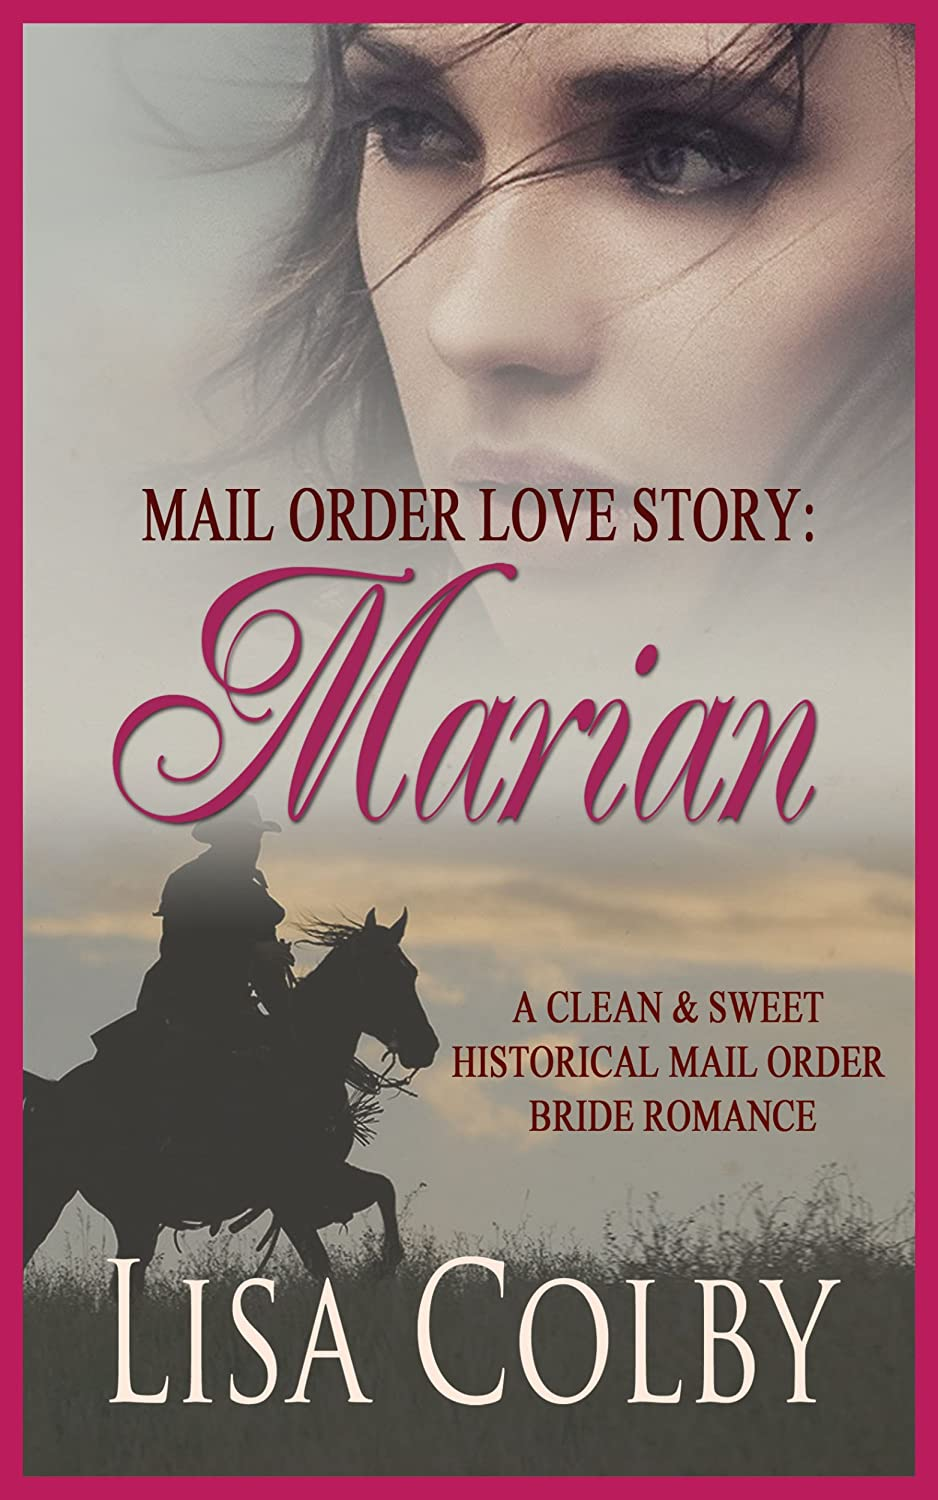 Copy-of-MARIAN-BOOK-COVER